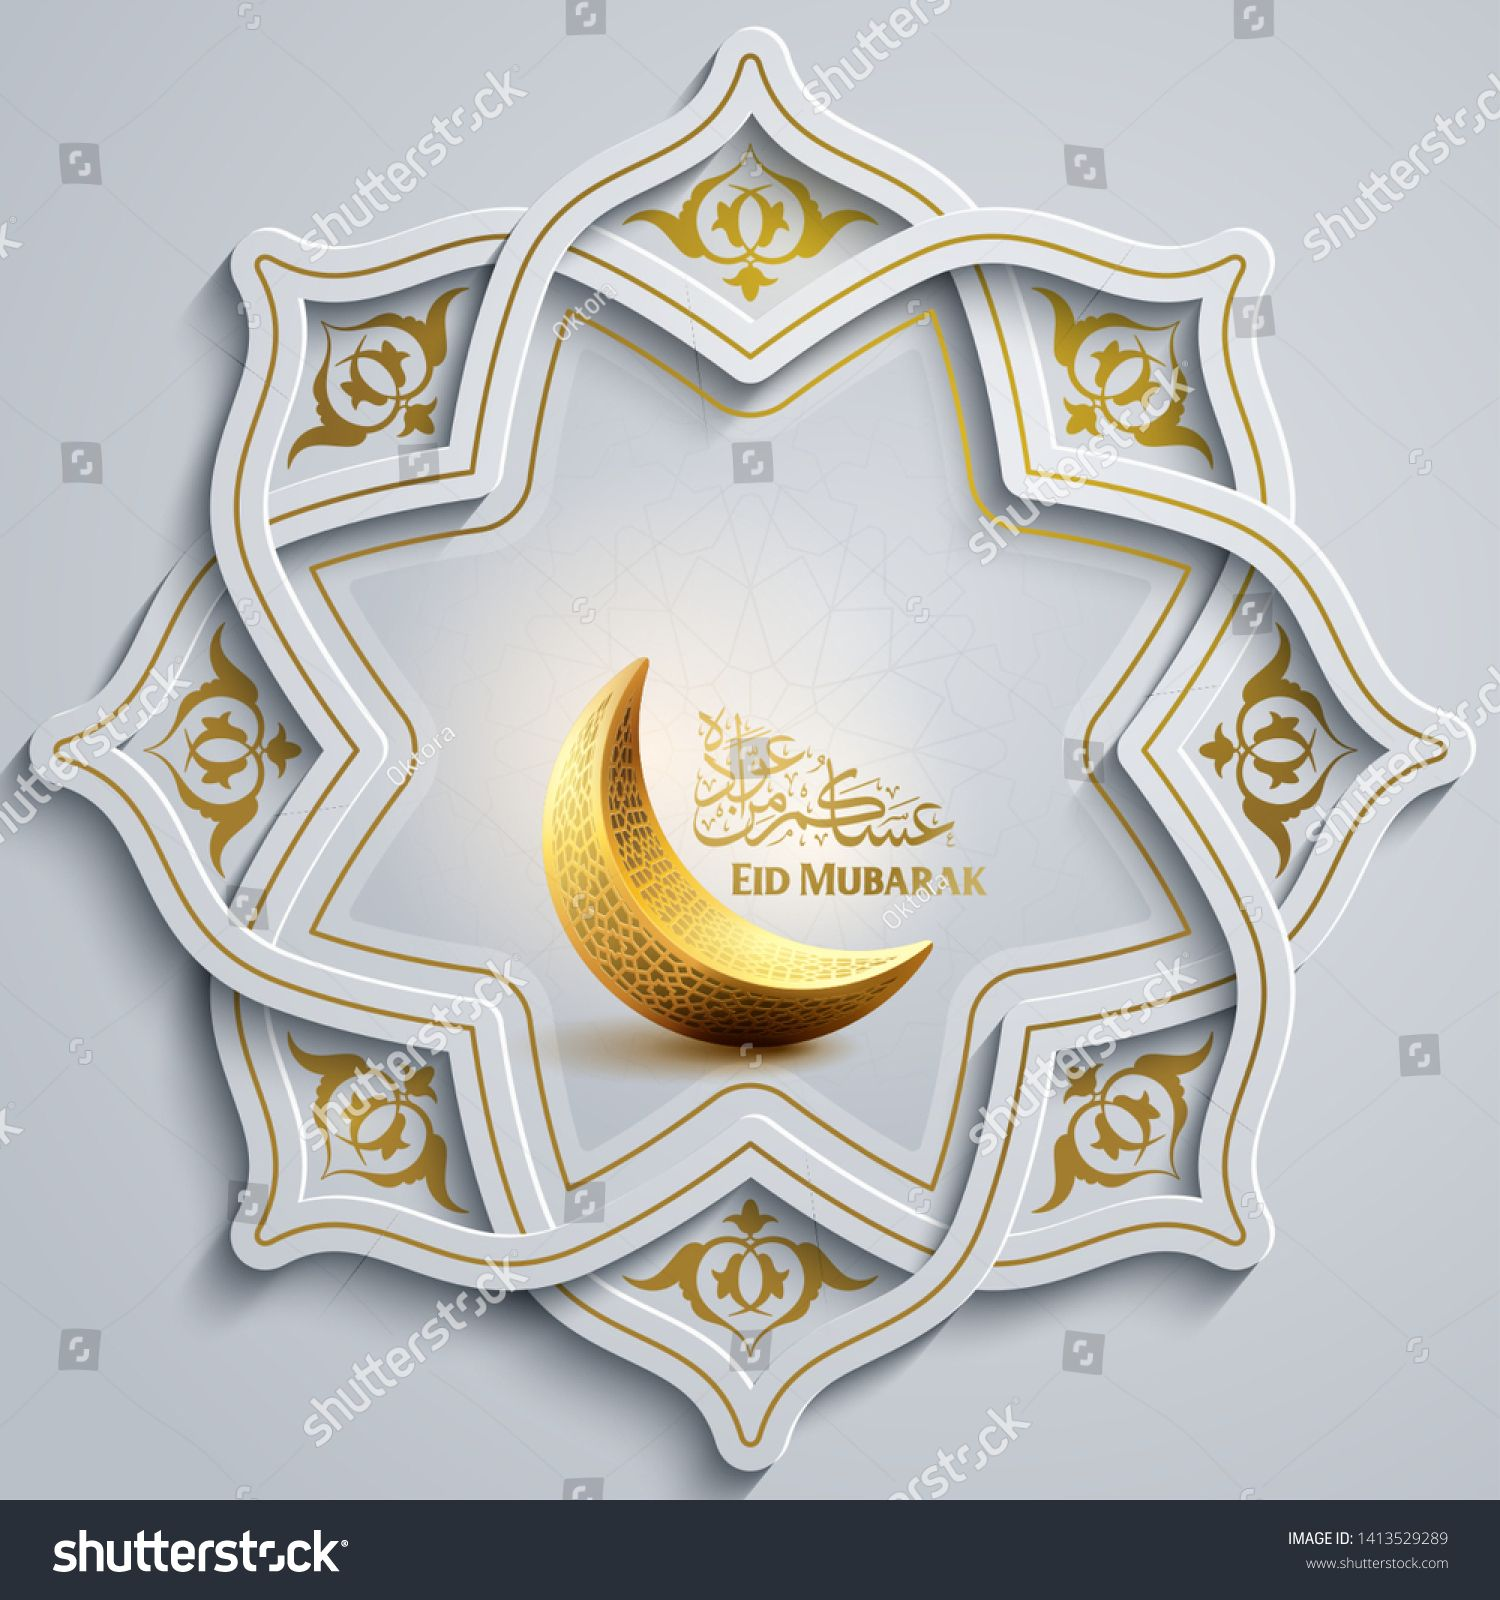 Eid Mubarak Islamic Greeting Banner Abstrack Background With Arabic Geometric And Floral Pattern Translation Of Te Eid Mubarak Eid Eid Mubarak Greeting Cards